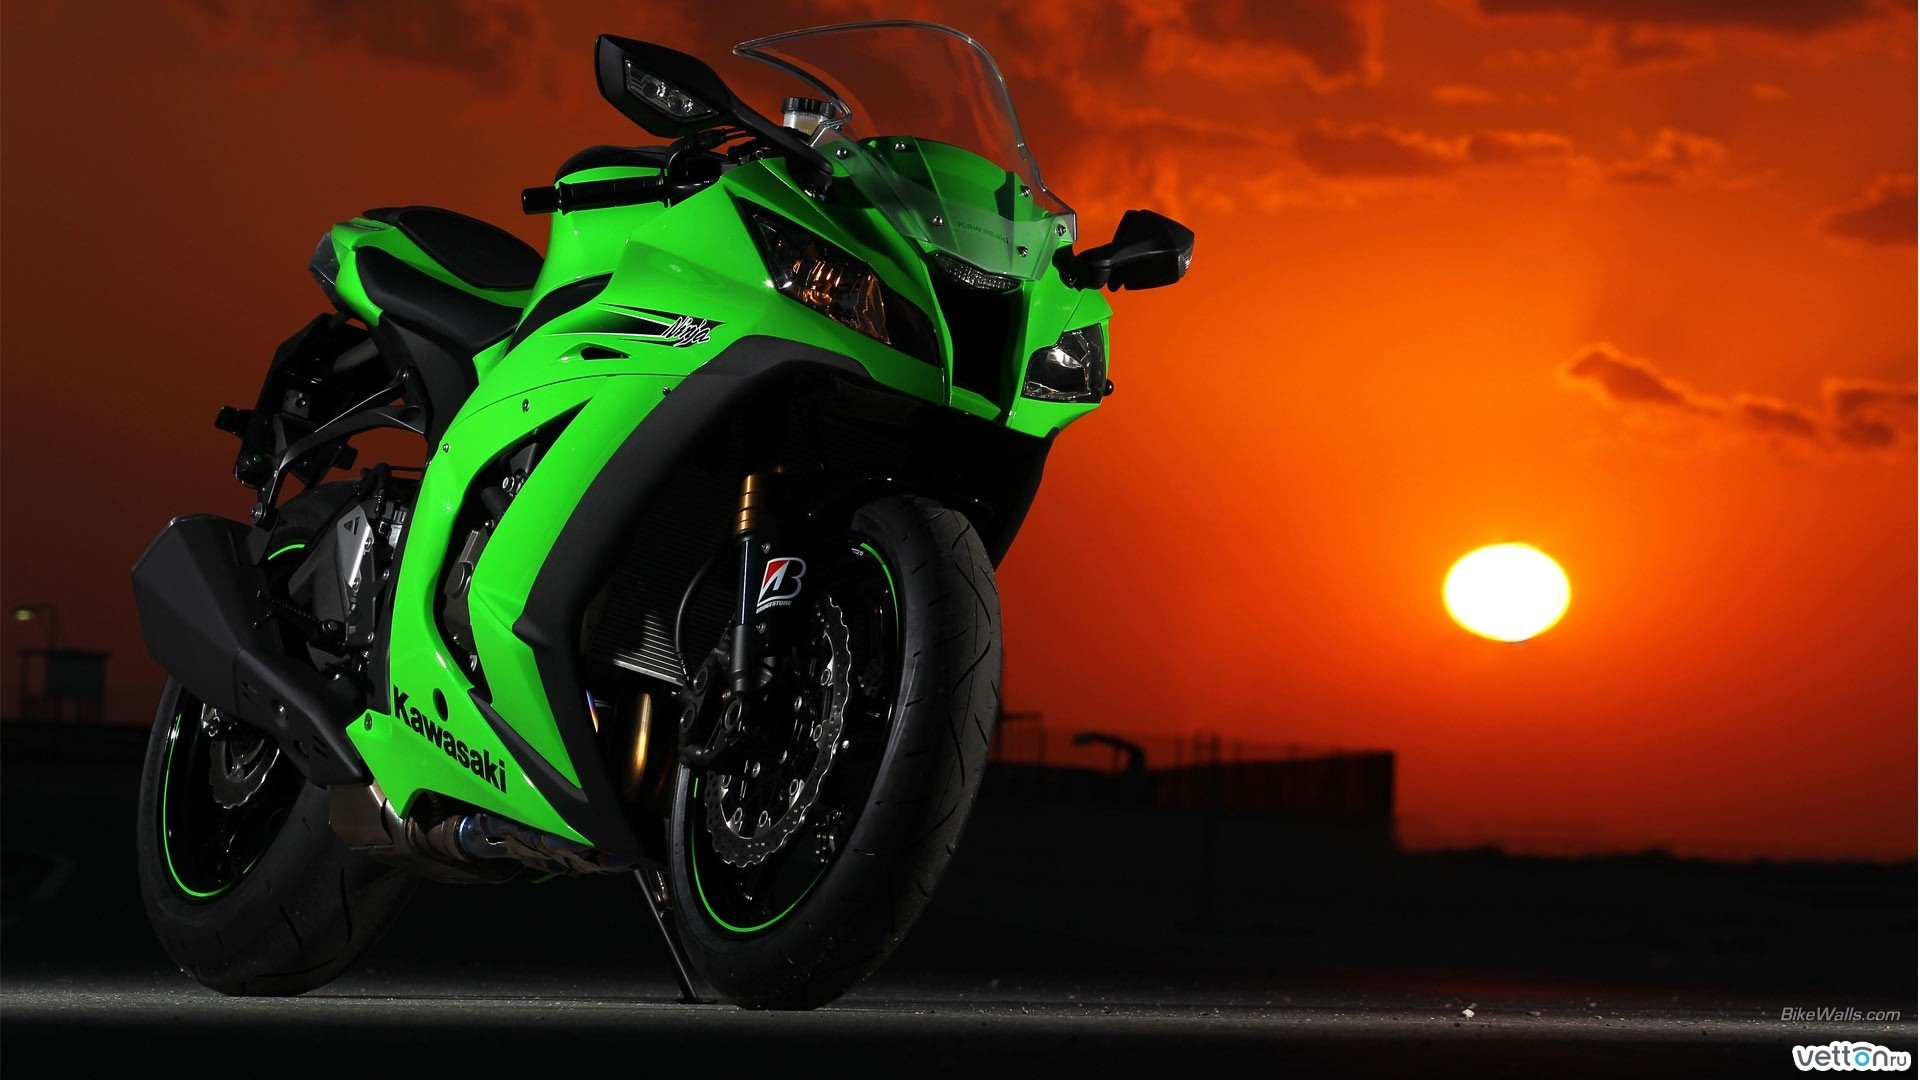 6 kawasaki ninja zx-10r hd wallpapers | background images